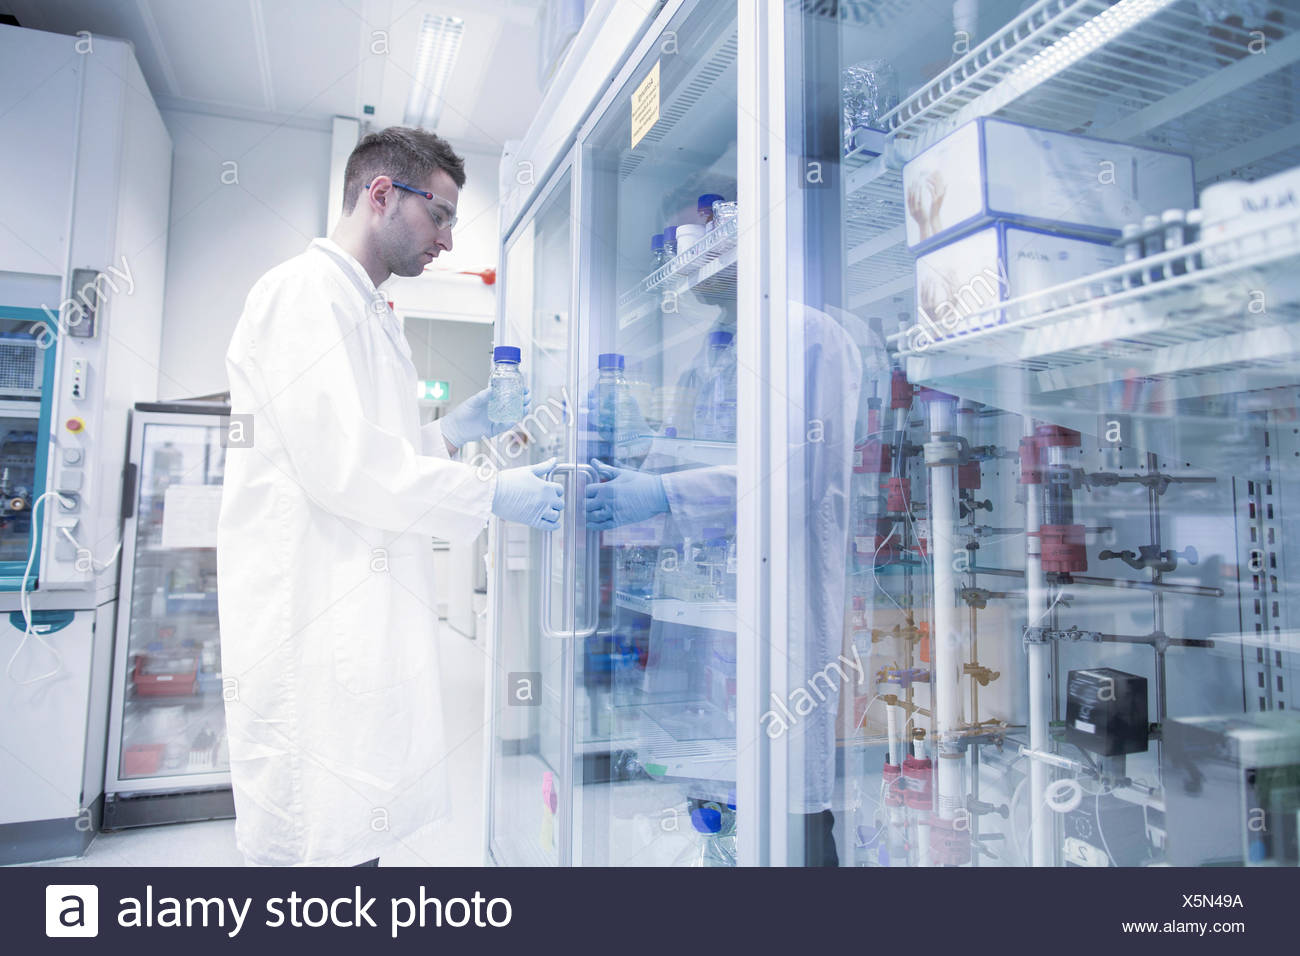 Scientist in microbiological lab opening fridge - Stock Image